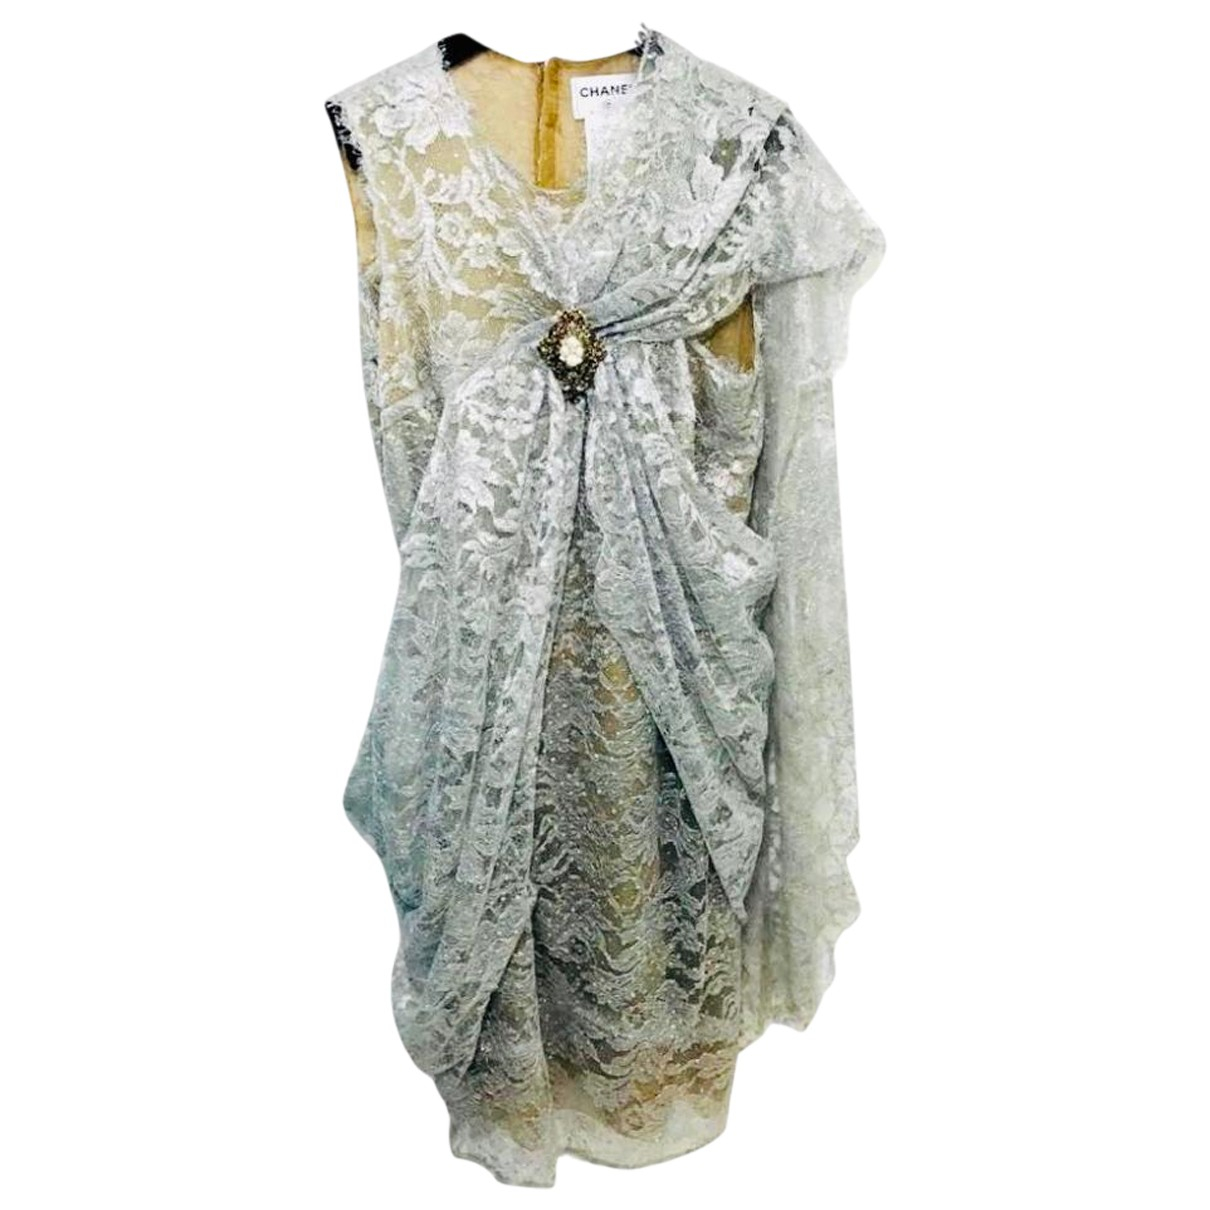 Chanel \N Kleid in  Silber Polyester